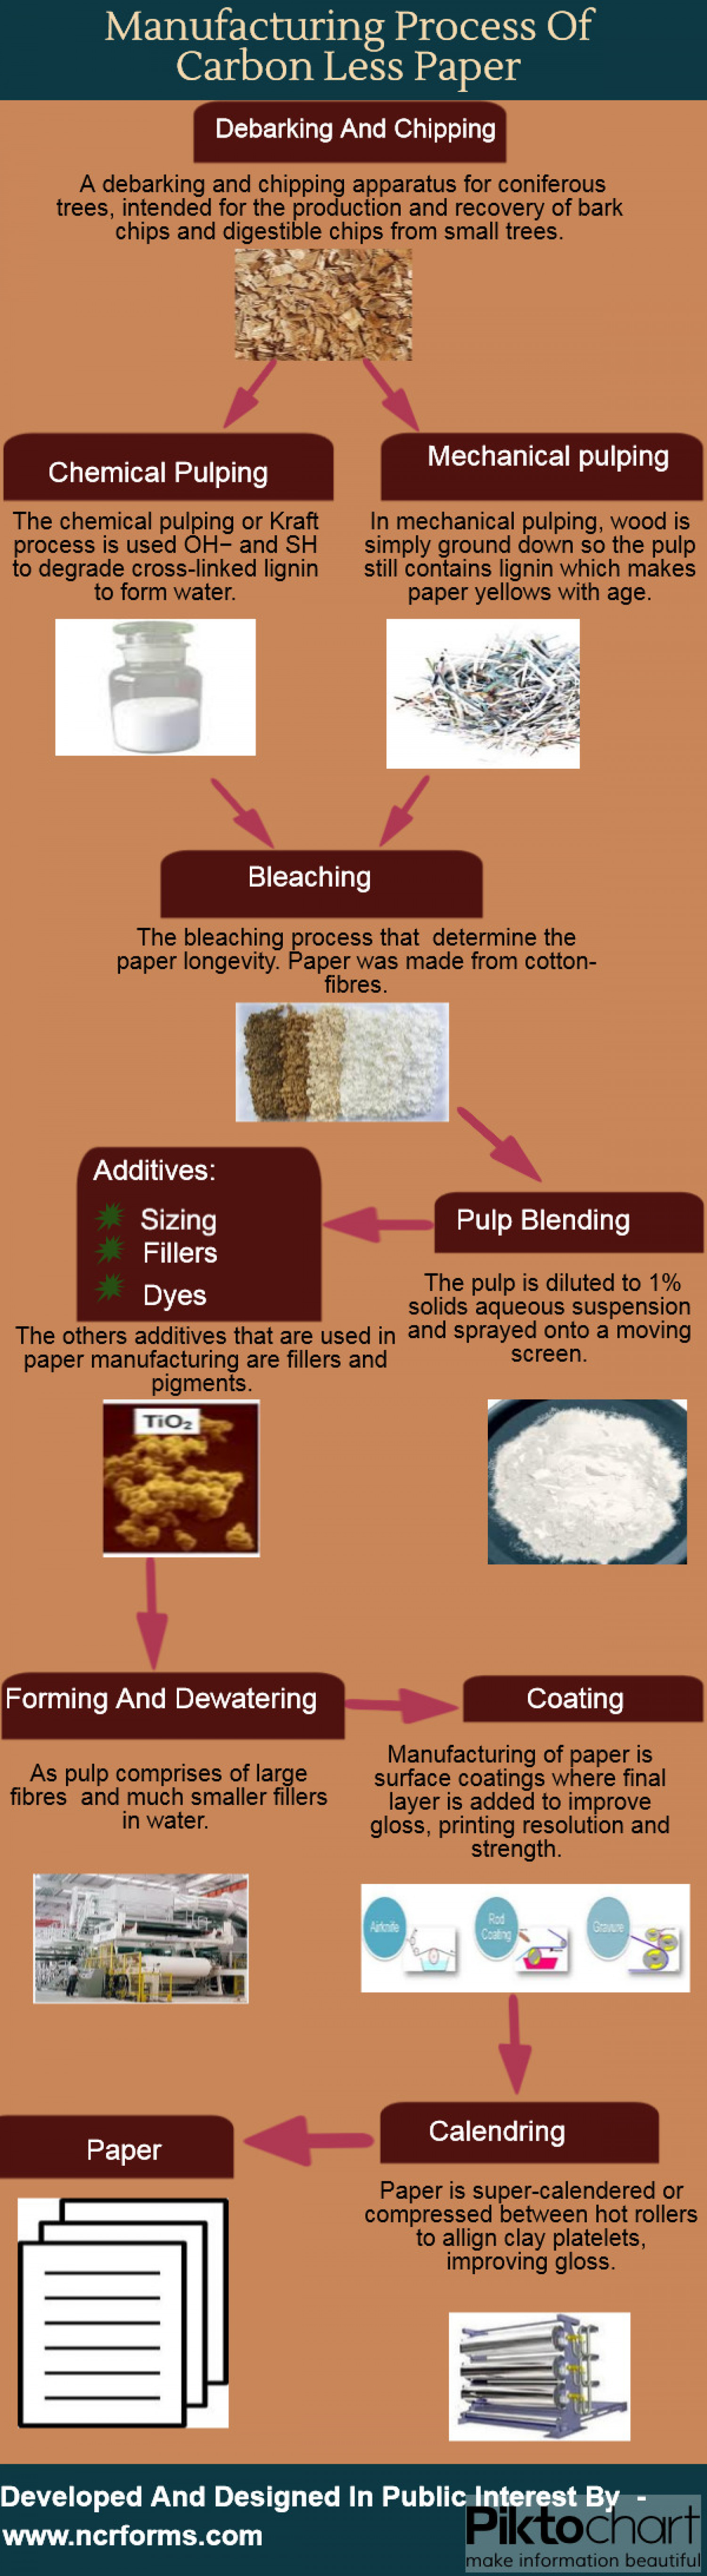 Manufacturing Process Of carbon Less Paper Infographic